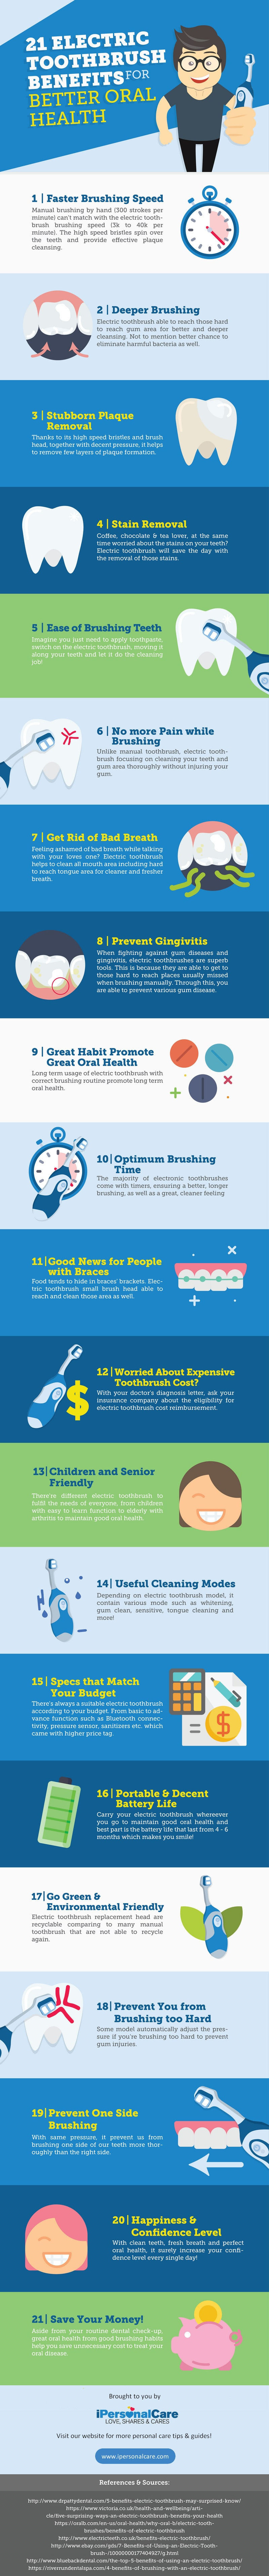 21 Electric Toothbrush Benefits for Better Dental Health